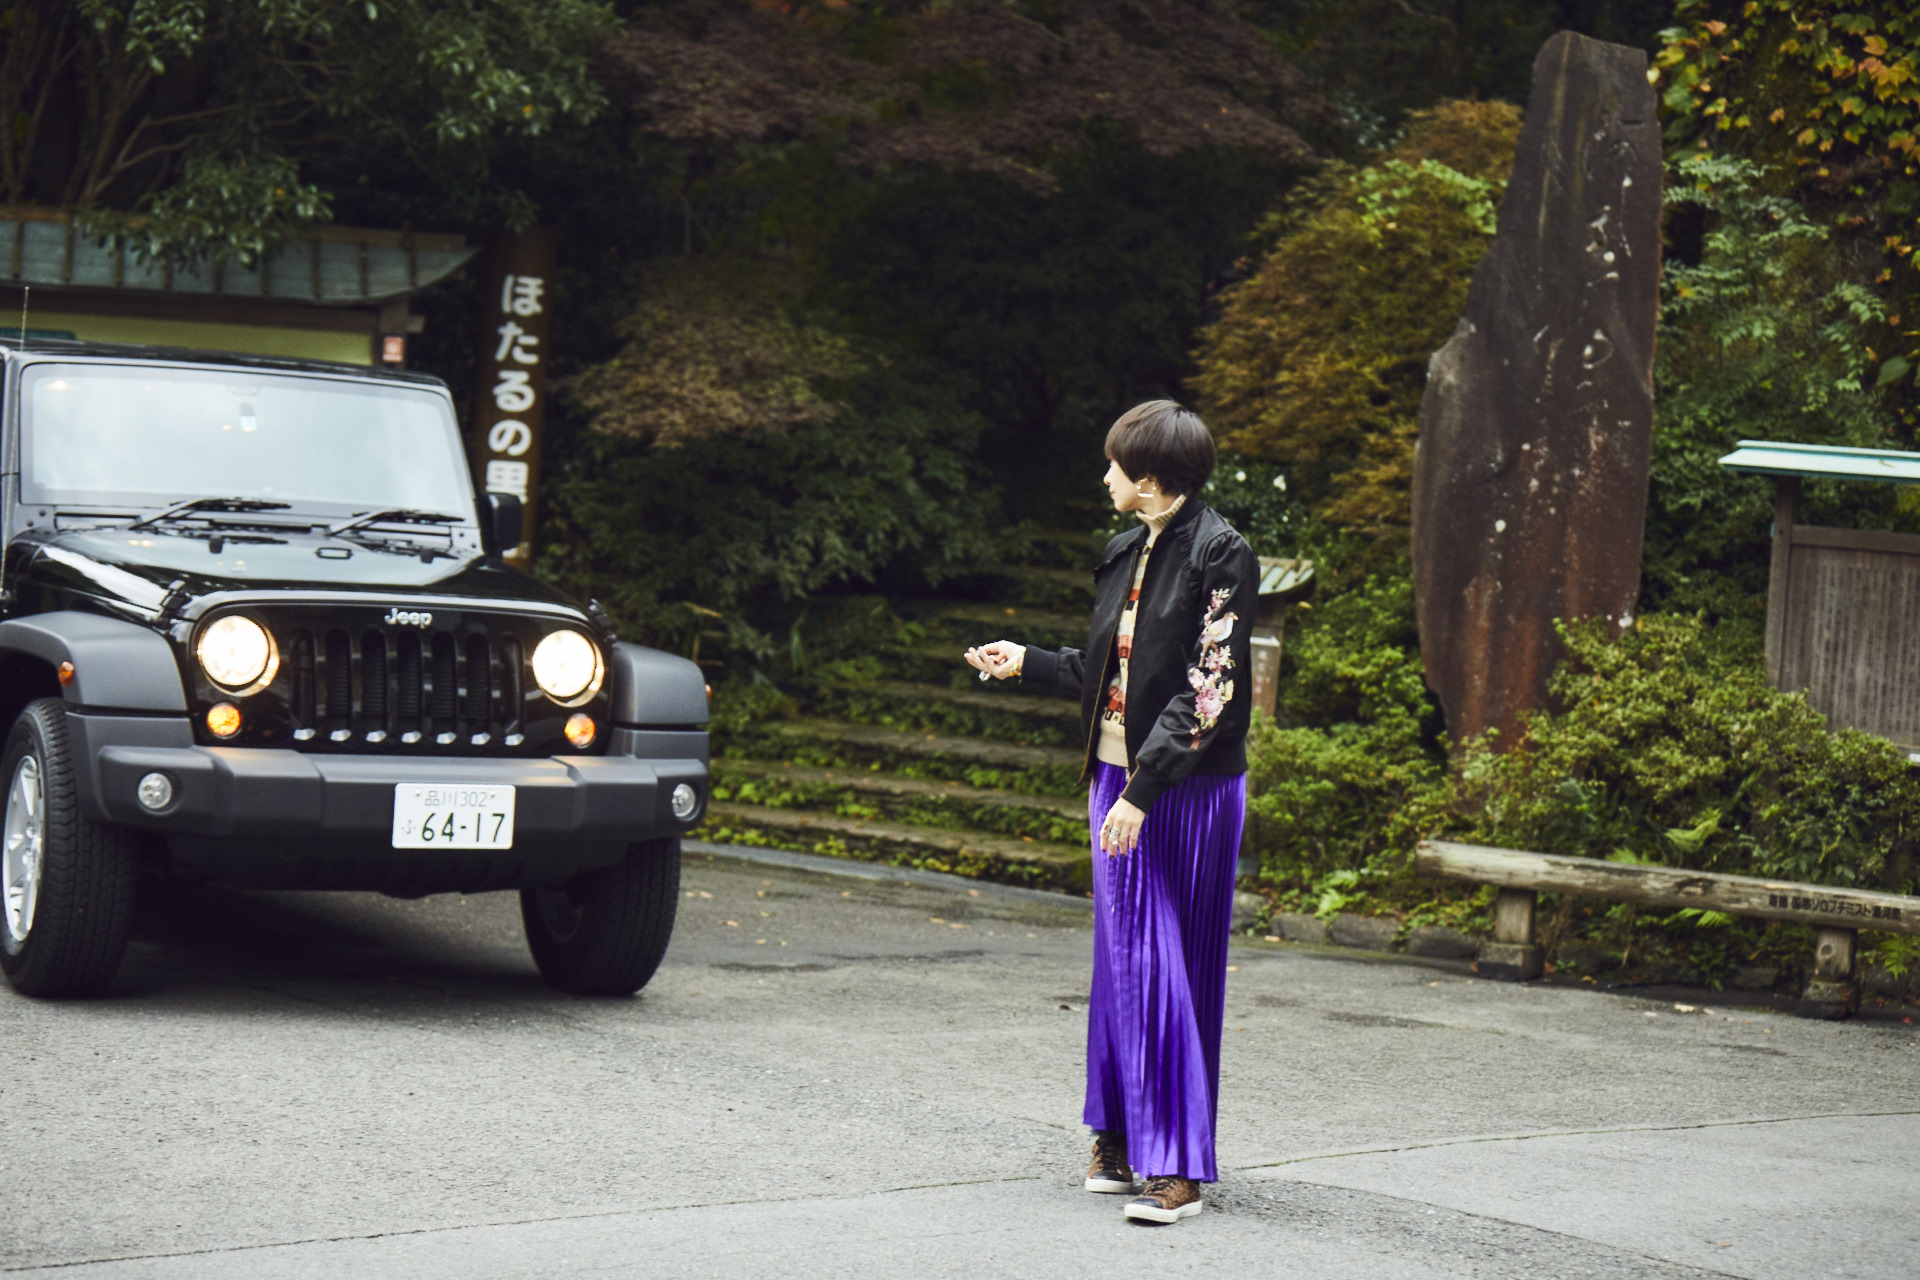 ho_104708 My Jeep®,My Life. ボクとJeep®の暮らしかた。女優・太田莉菜